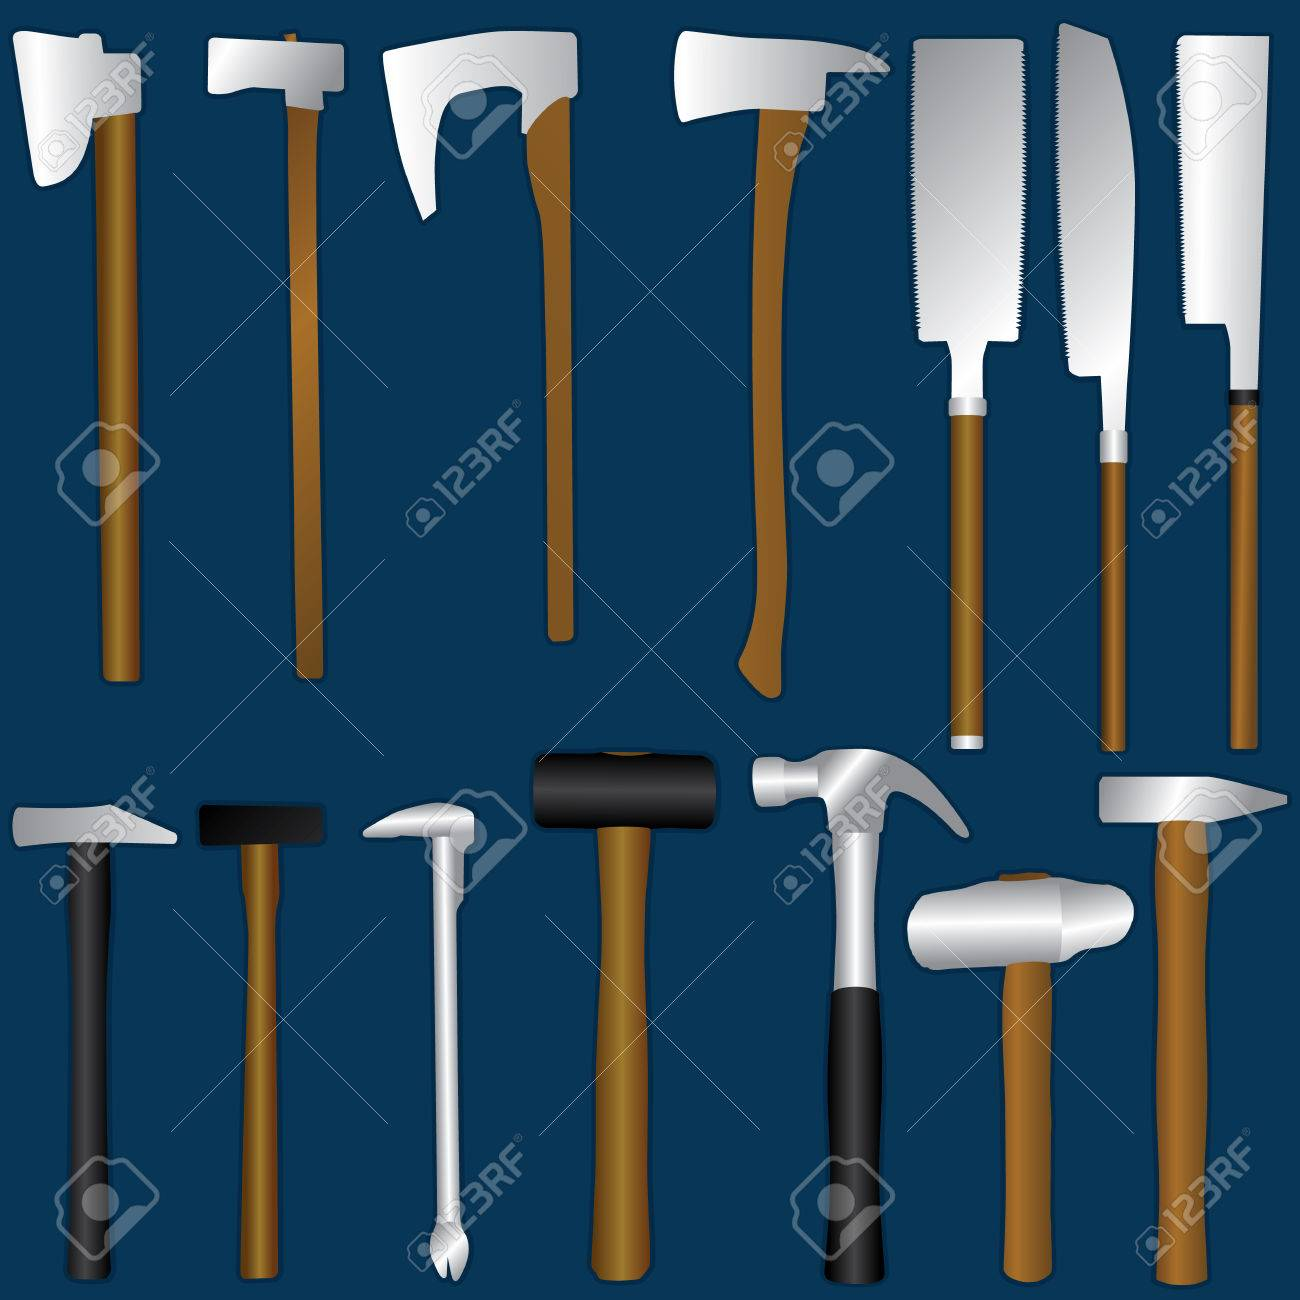 types of axes